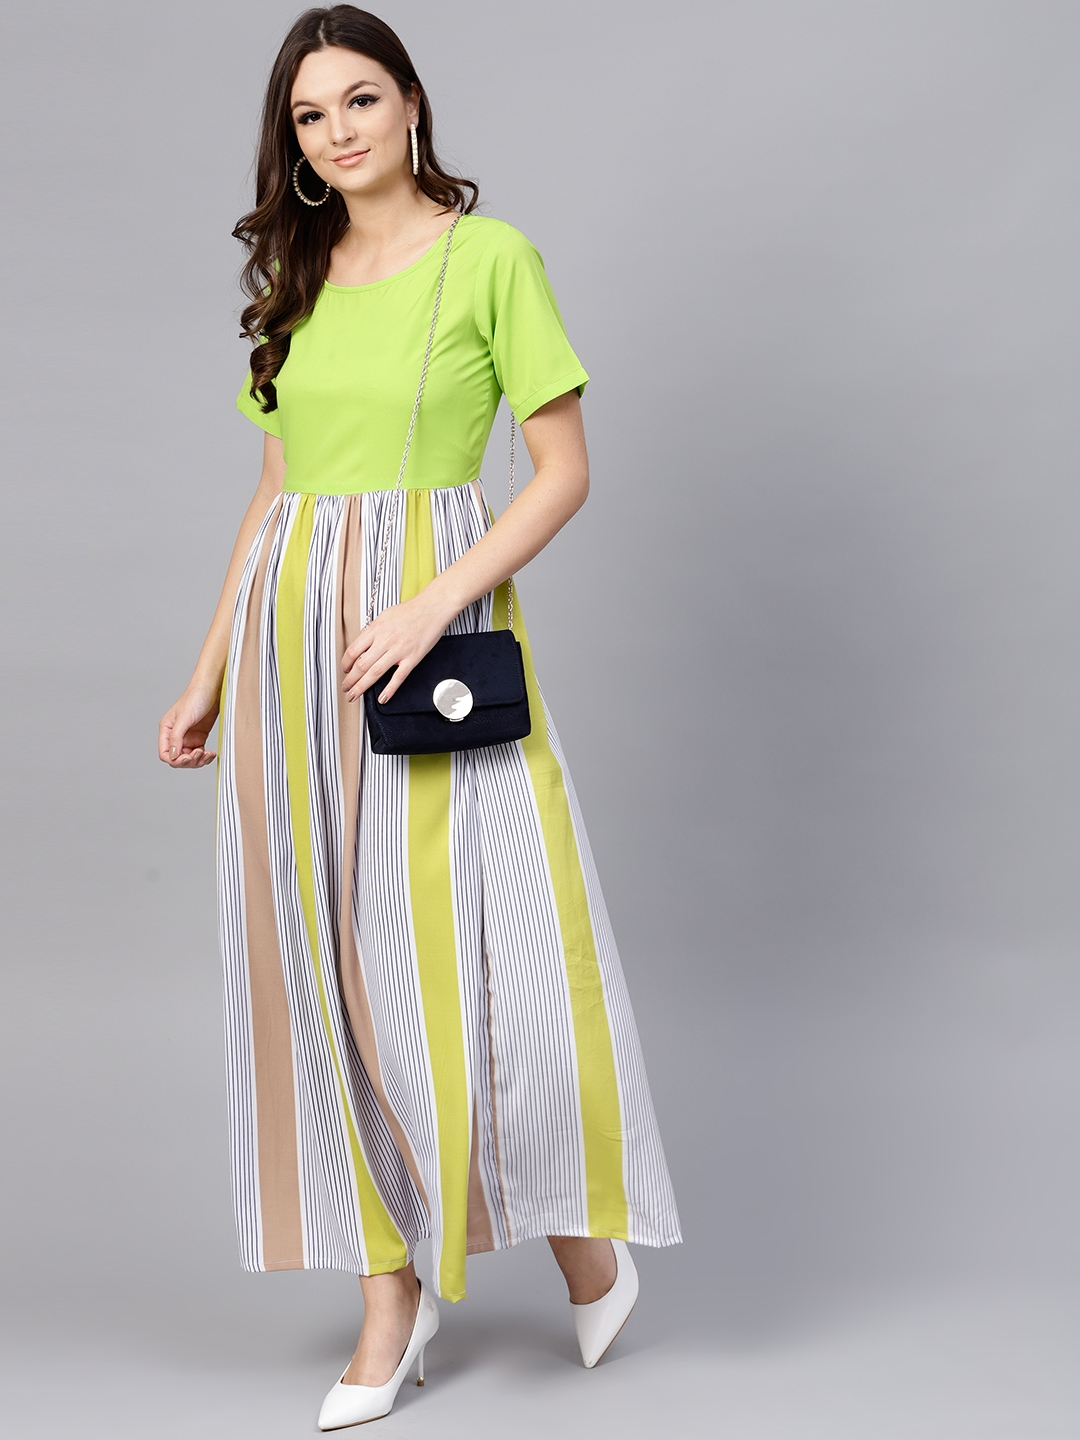 578a7527e4 Buy Aasi Women Green   Off White Striped Maxi Dress - Dresses for ...